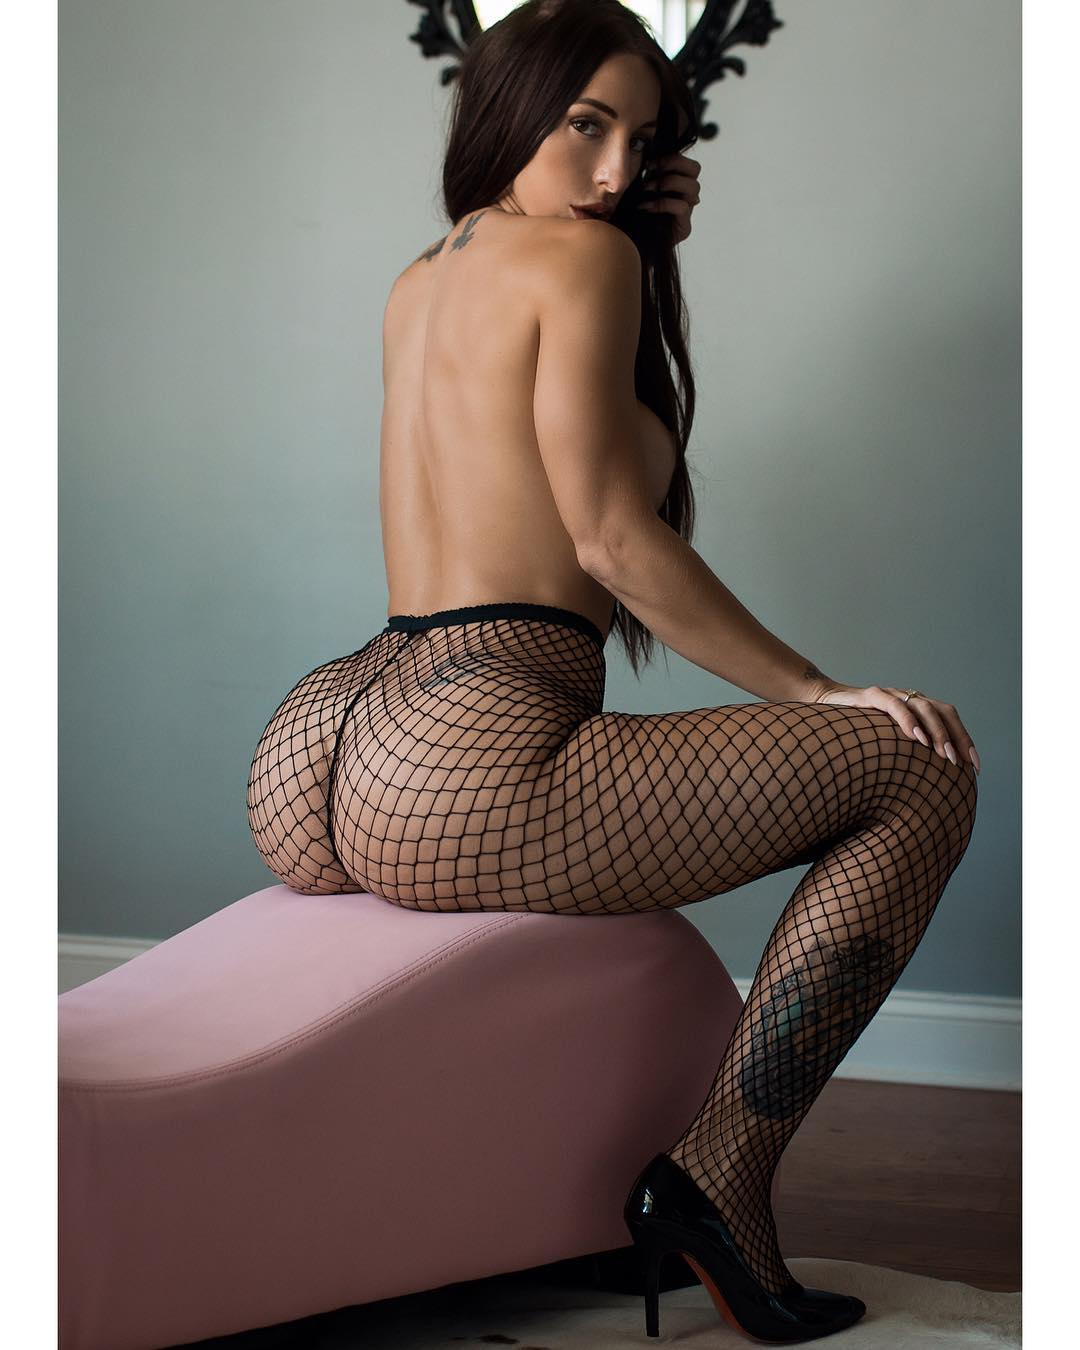 sexy brunette model Samantha Shane showing off her sexy booty in fishnet stockings